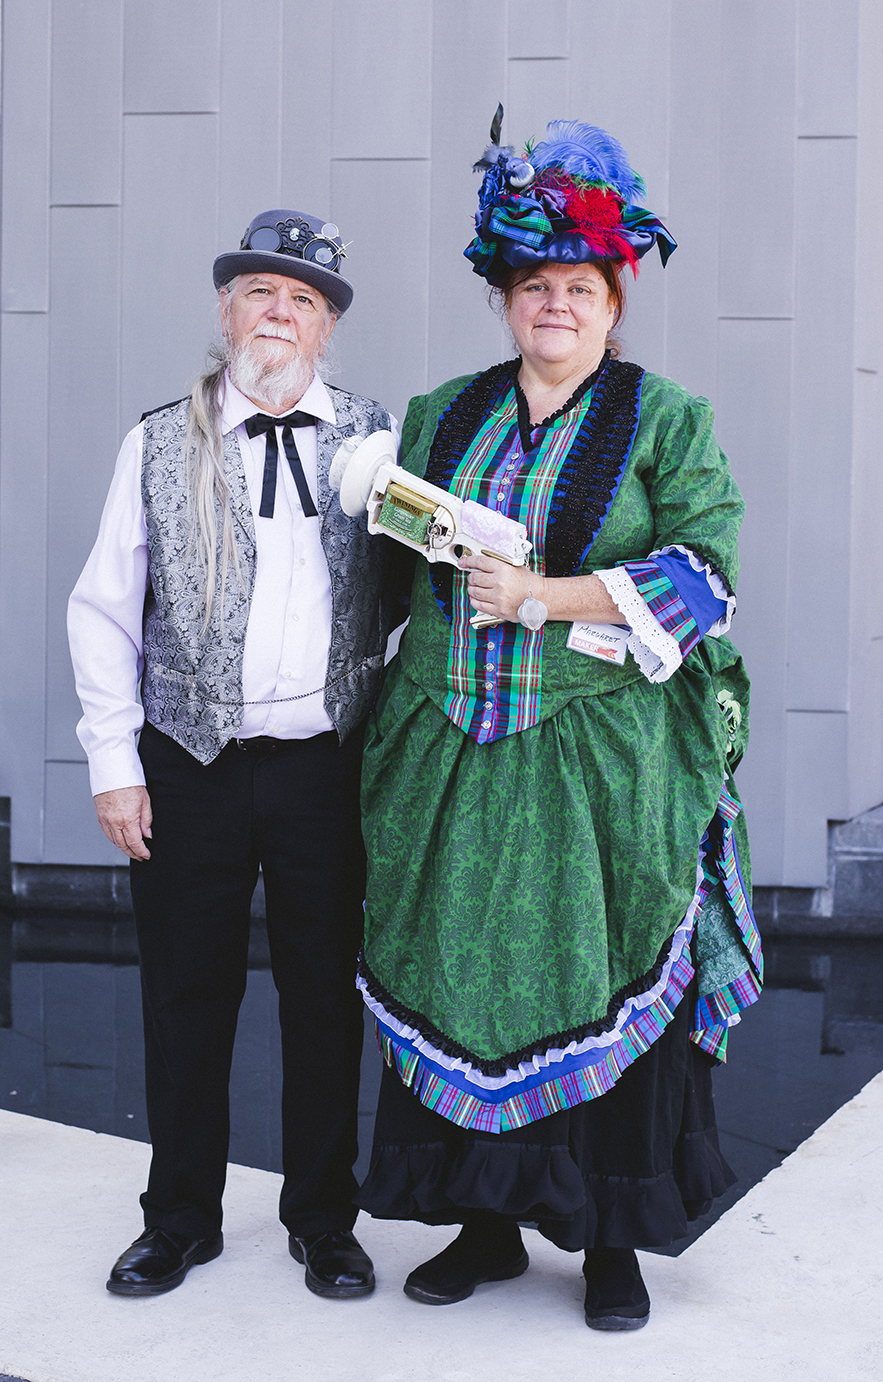 Margaret Lipscomb and Louis Lipscomb (Baton Rouge Area Steampunk Society). Photo by Allie Appel.